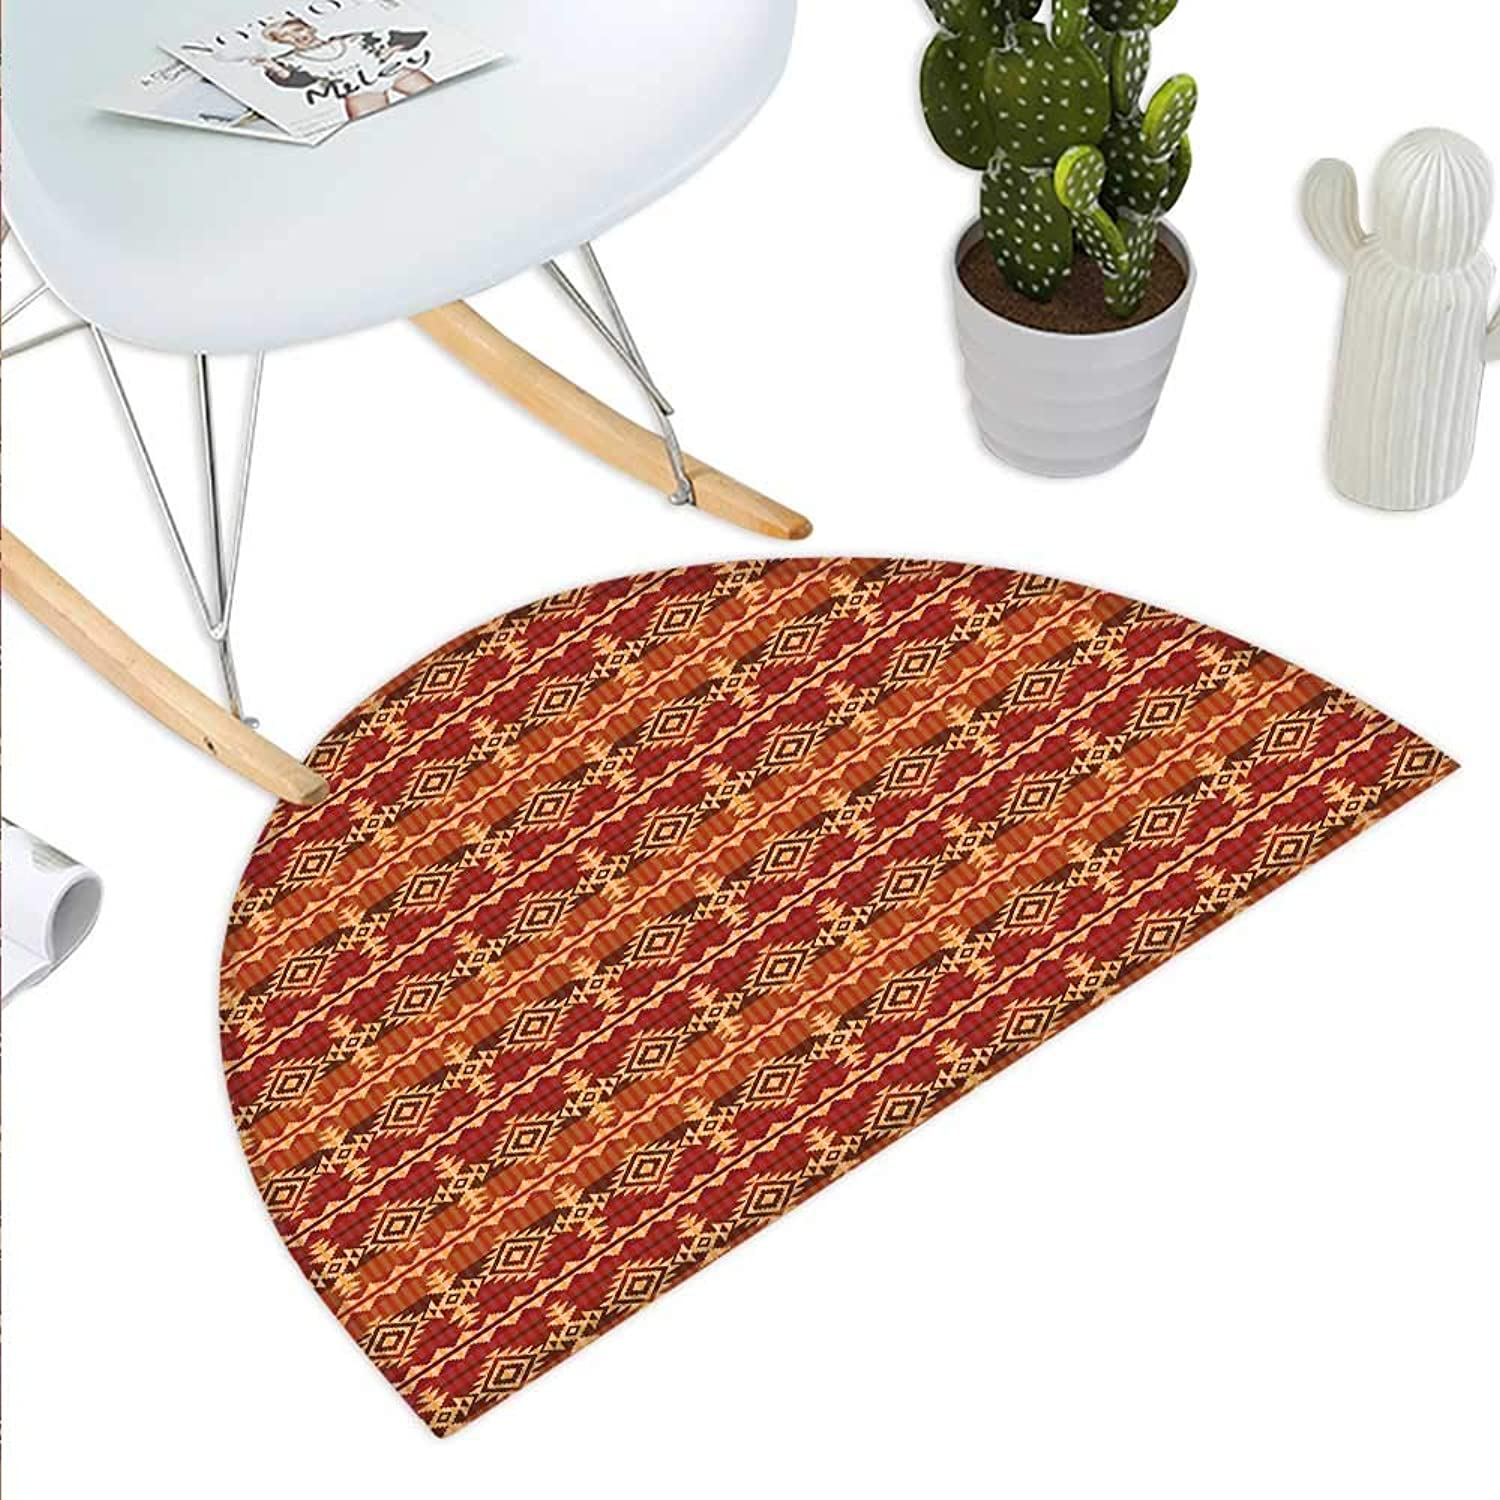 Mexican Semicircle Doormat Ancient Aztec Culture Theme Classical Triangles Pattern Primitive Ornaments Halfmoon doormats H 35.4  xD 53.1  Pale orange Brown